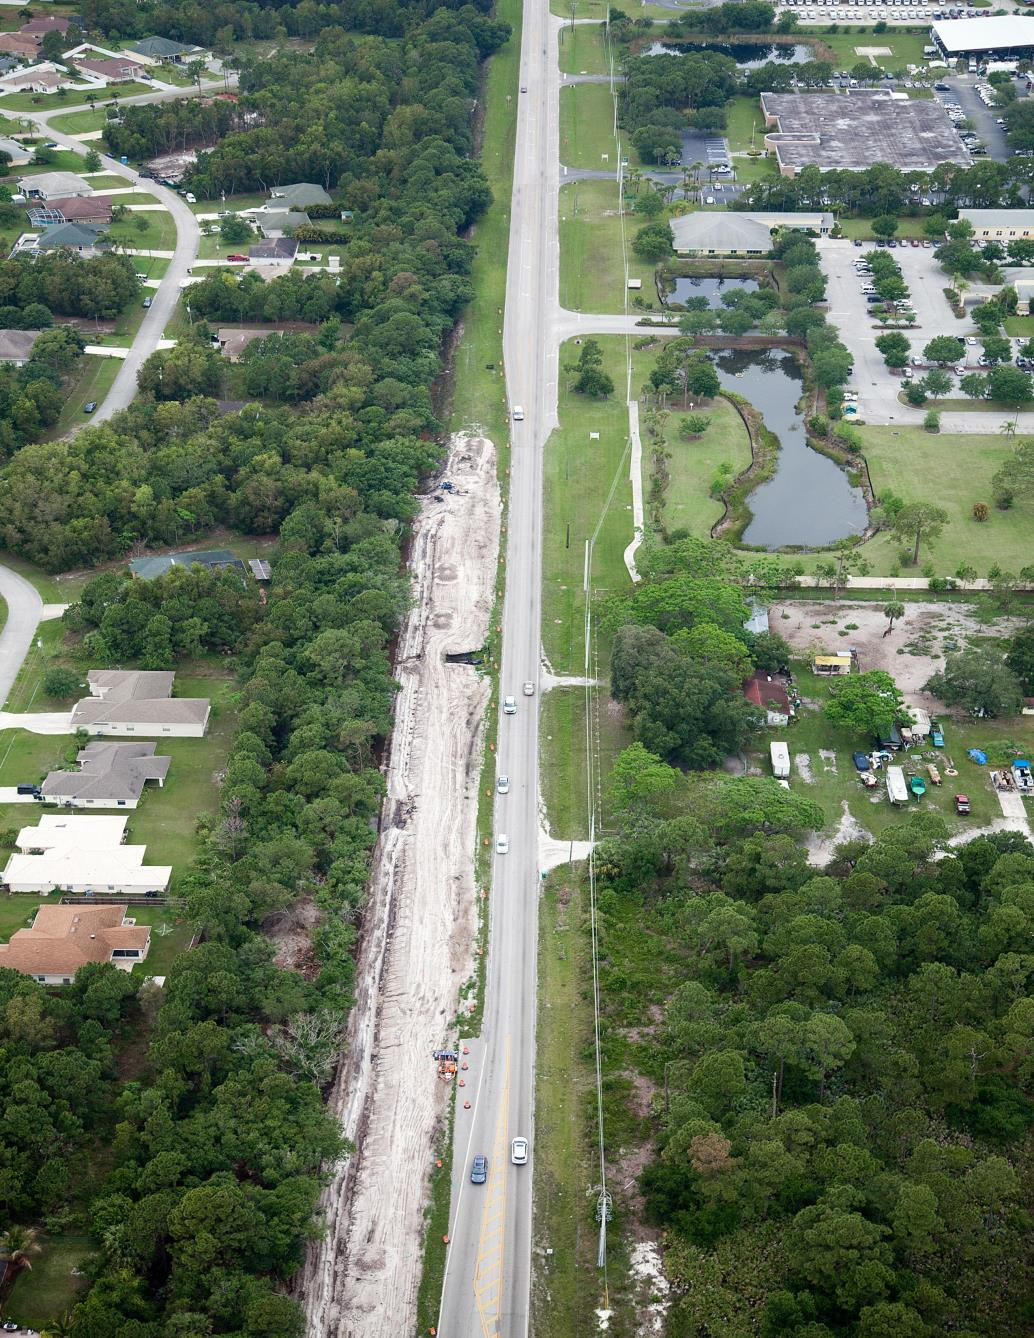 Aerials_010__4-27-15__Midway Rd. looking West from 1272 00 to Beyond Begin Construction _Rd_looking_west_from_1272_00_to_beyond_Begin_Construction